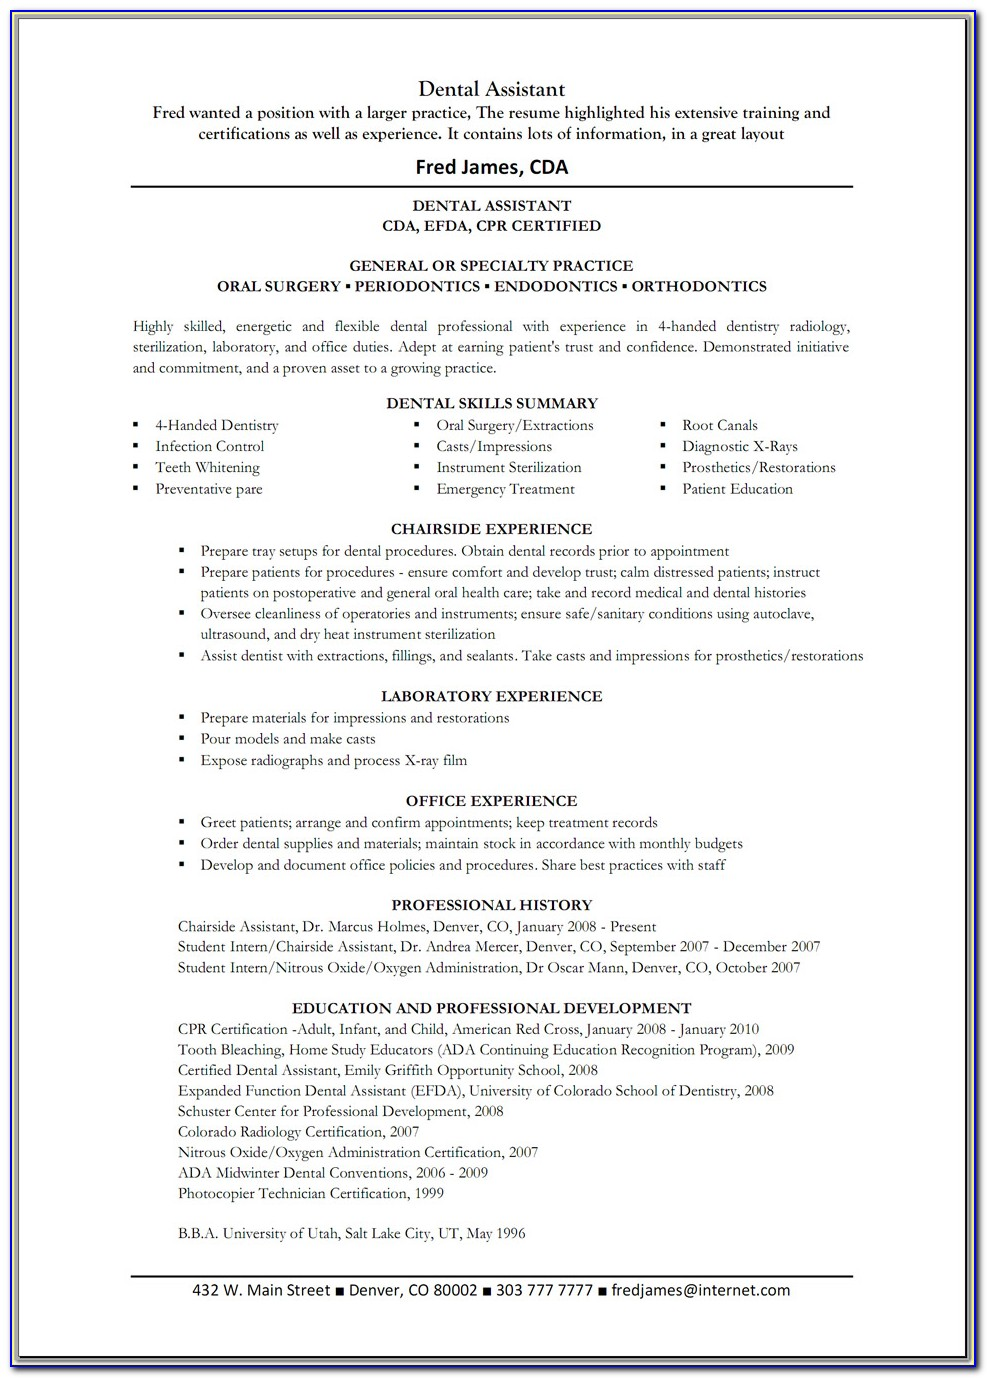 Sample Resume For Dental Assistant Without Experience